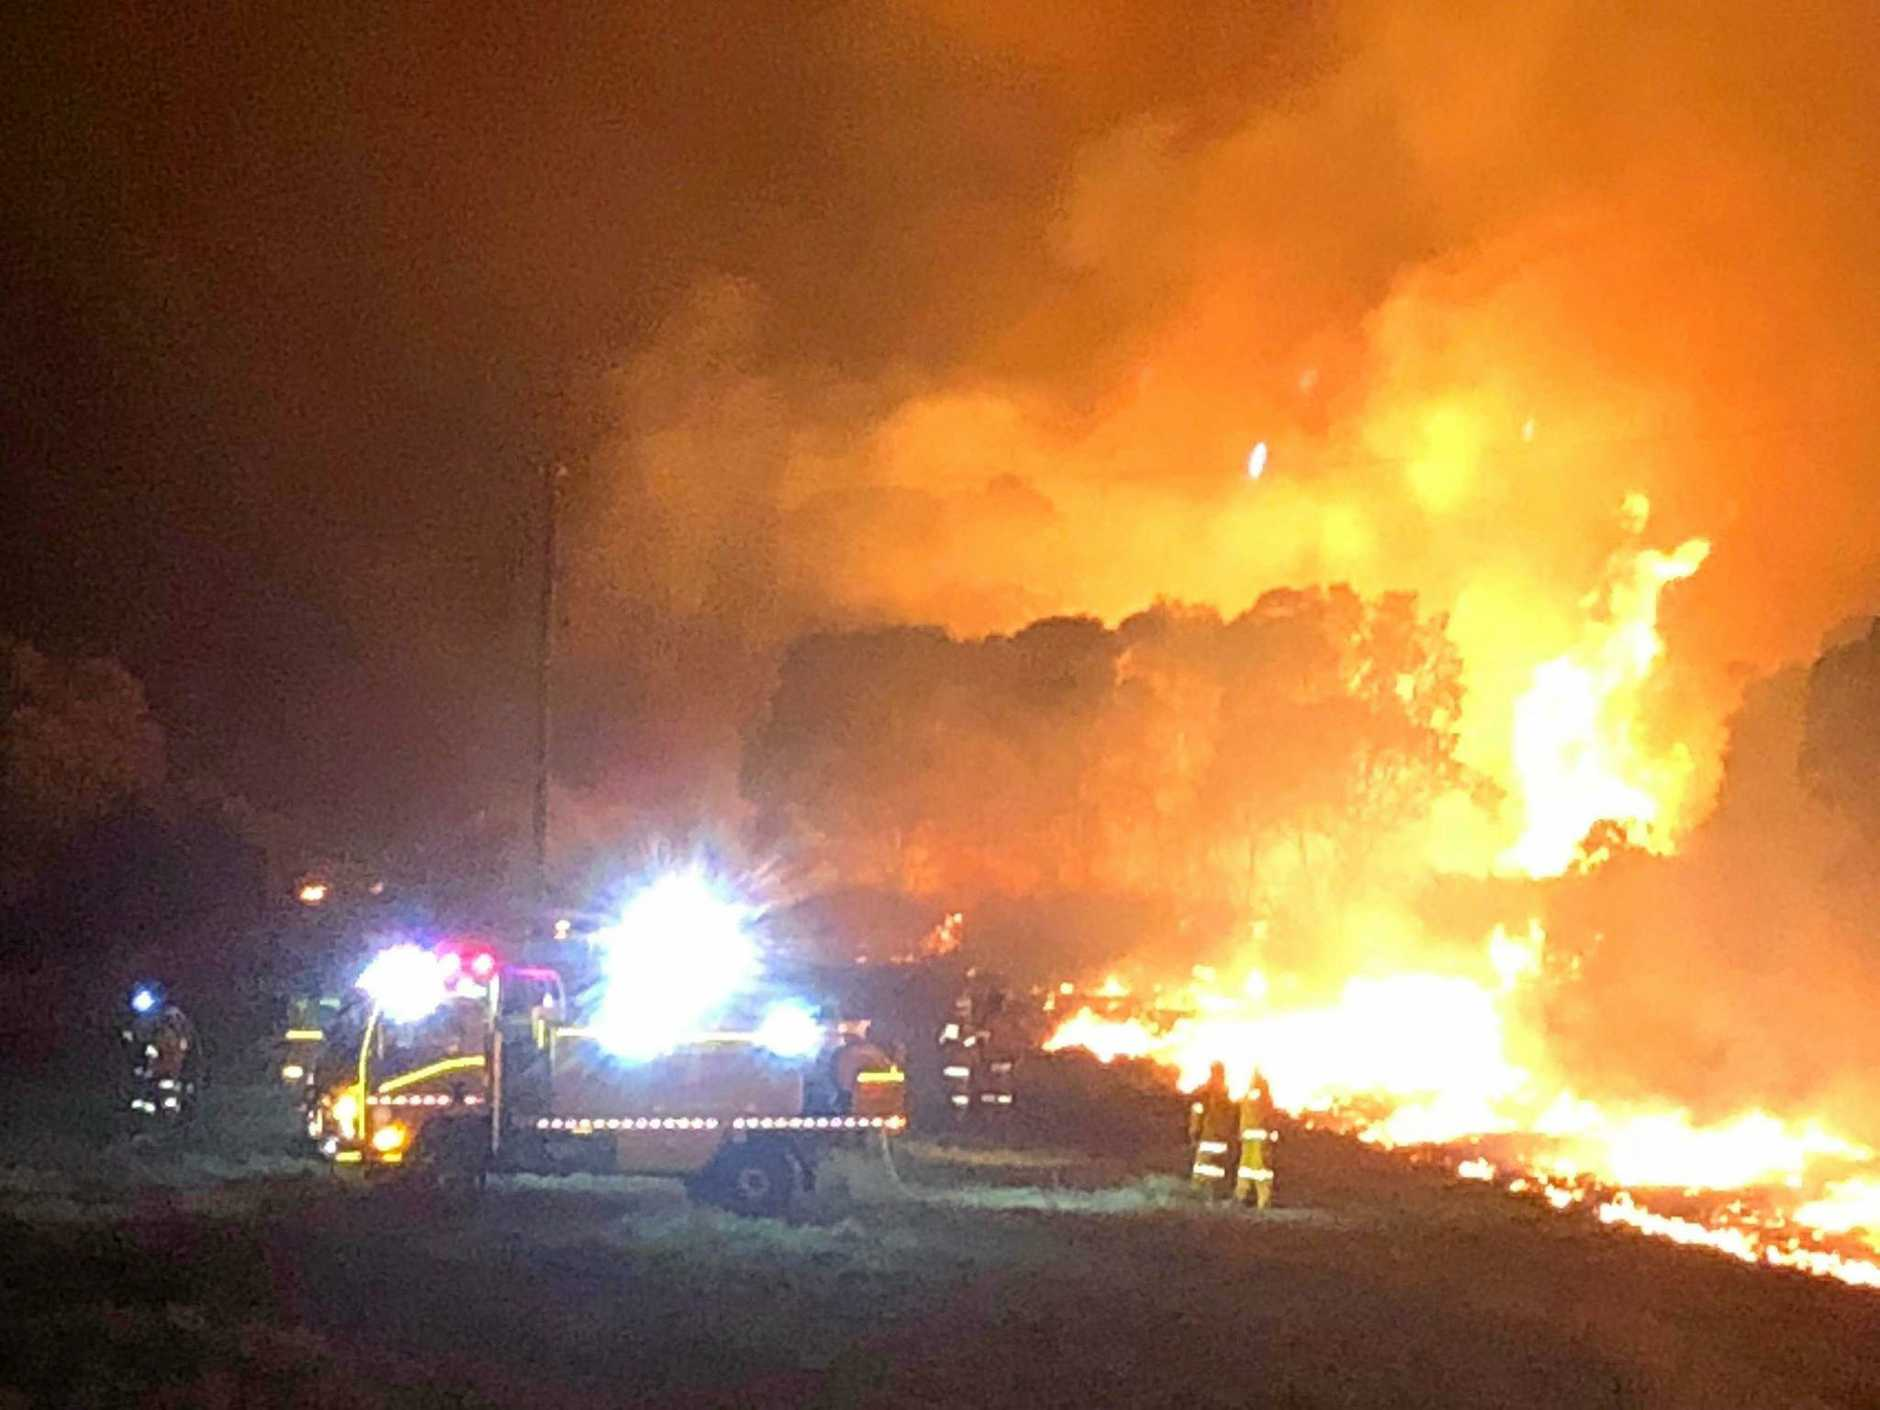 BUSHFIRE: QFES Crews are currently monitoring the fire burning within the vicinity of Booie Rd and Pates Rd in Booie, which broke out on Thursday September 21.